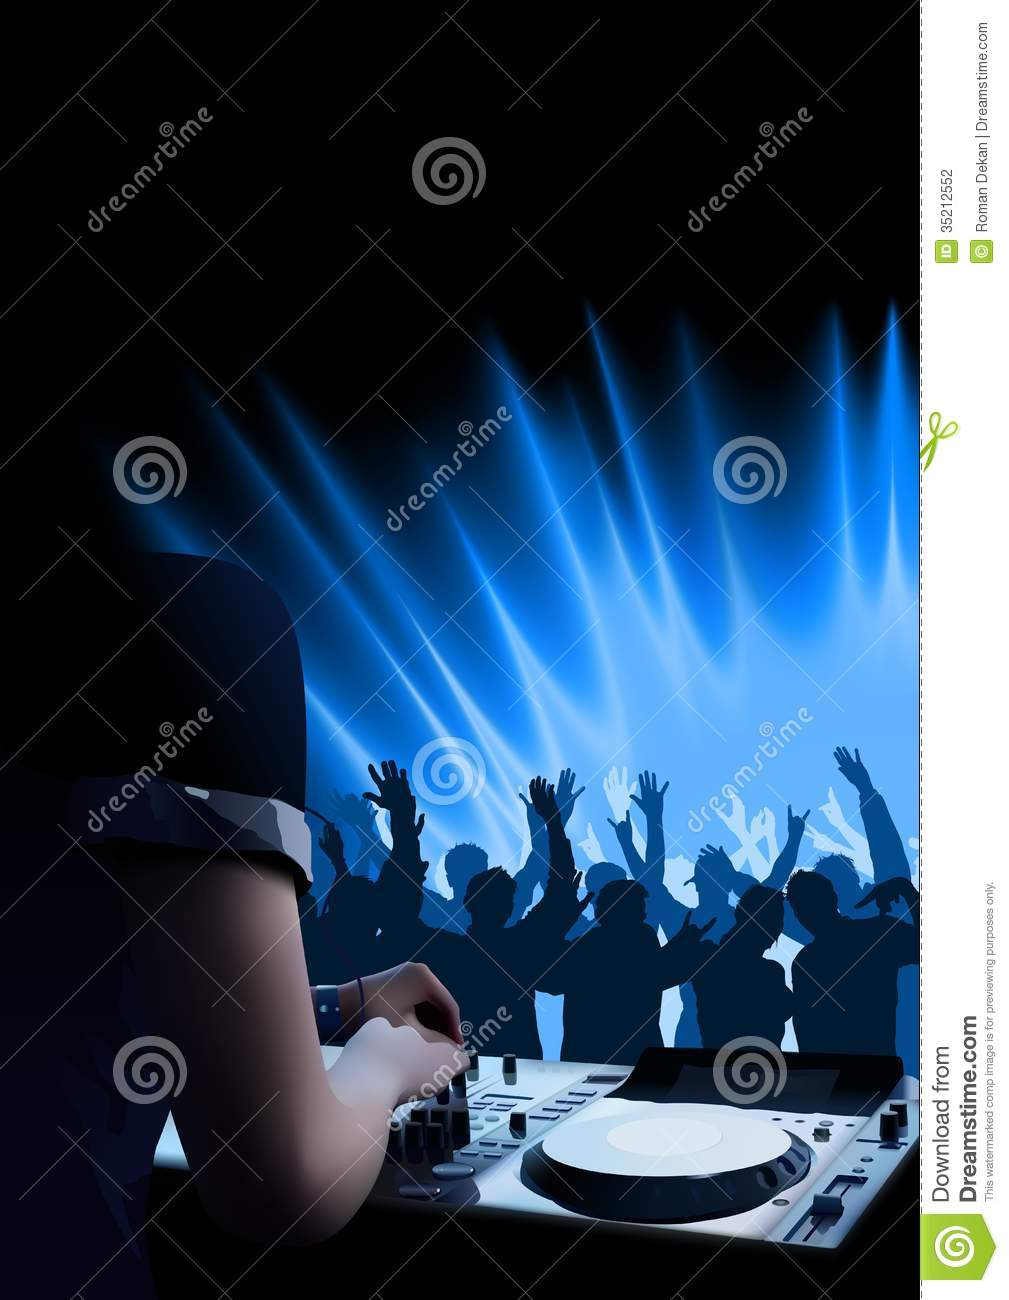 DJ Dance Party Background Stock Photography - Image: 35212552